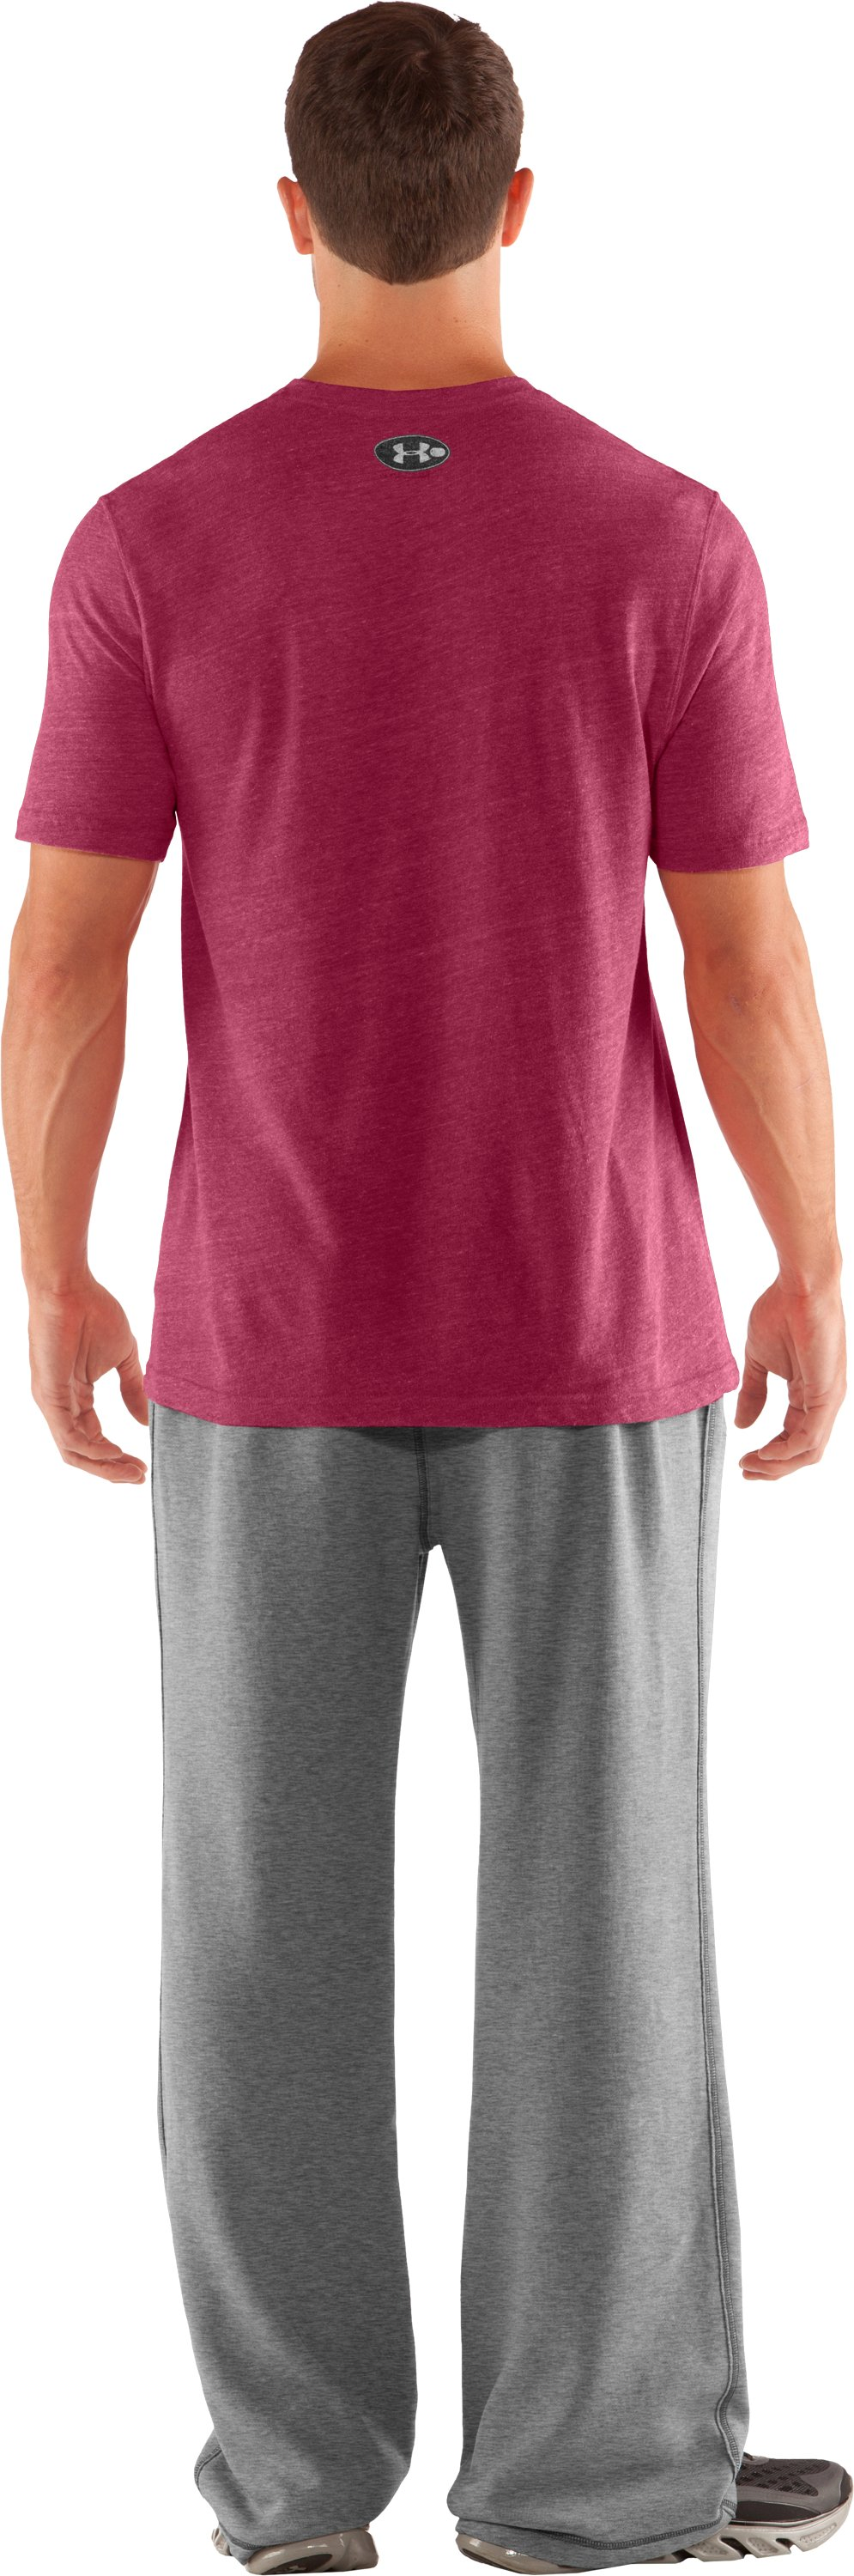 Men's Boston College Under Armour® Legacy Pants, True Gray Heather, Back